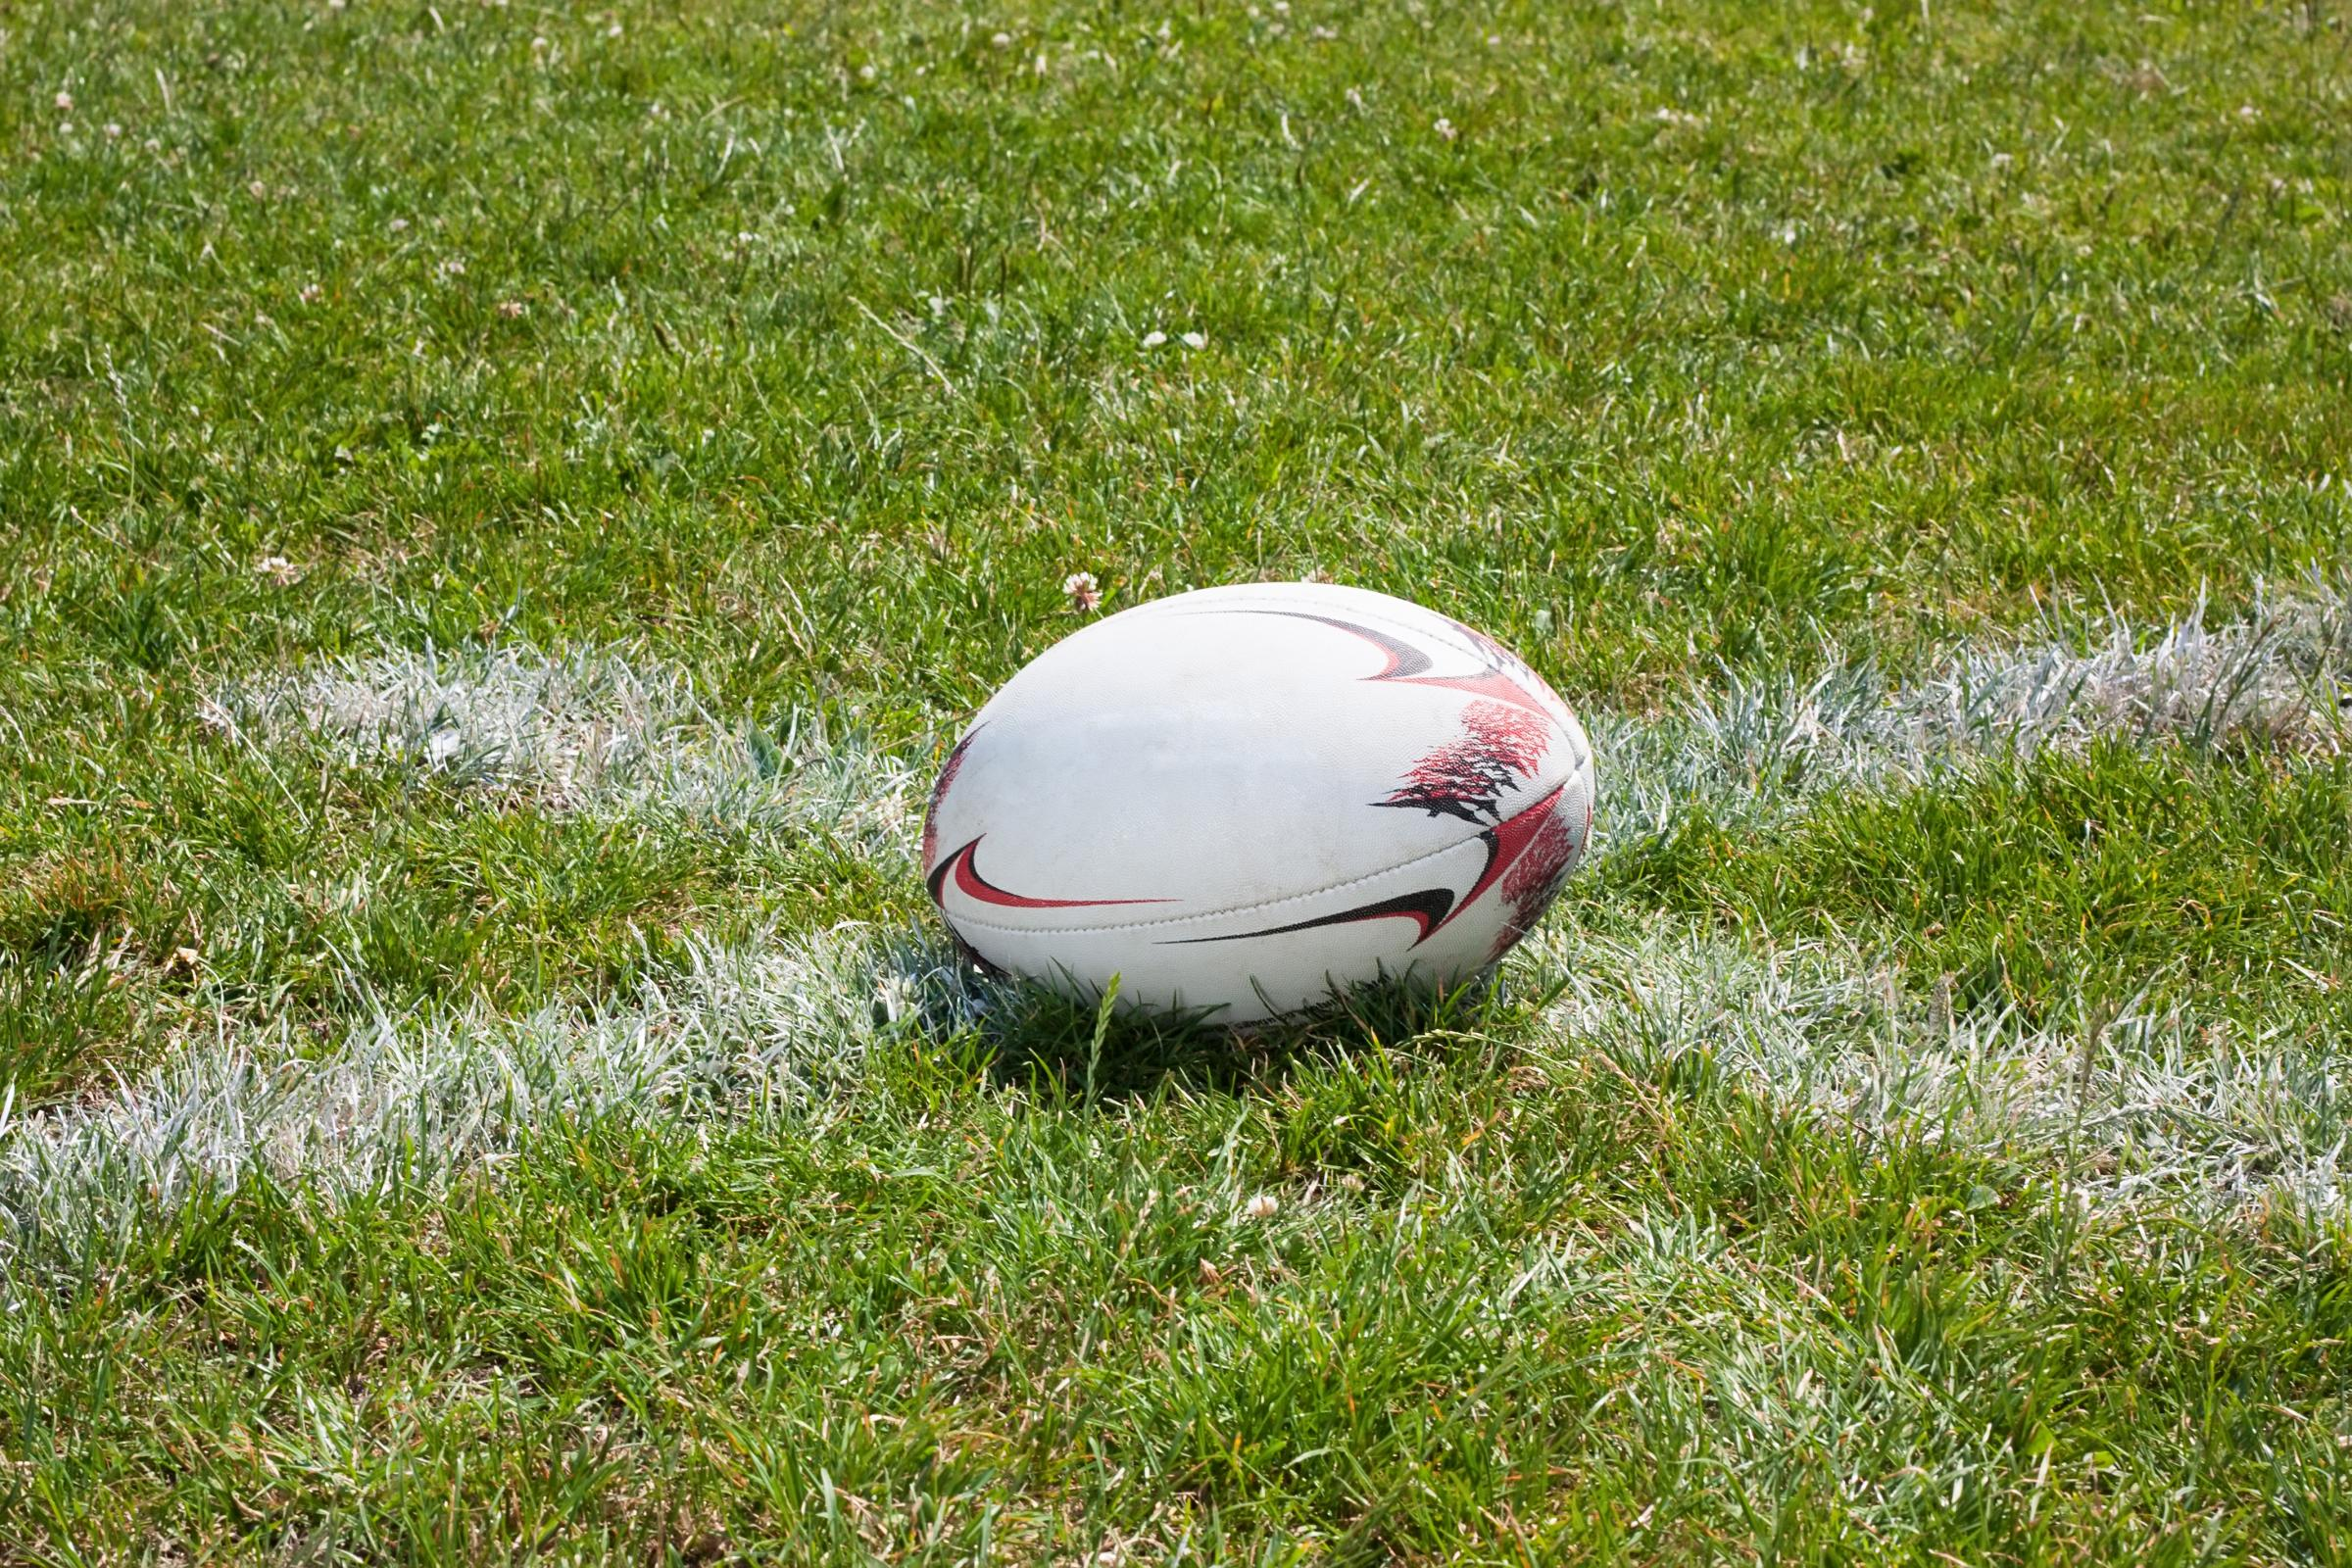 Hillhead Jordanhill Rugby club awarded £1k grant for facility improvements